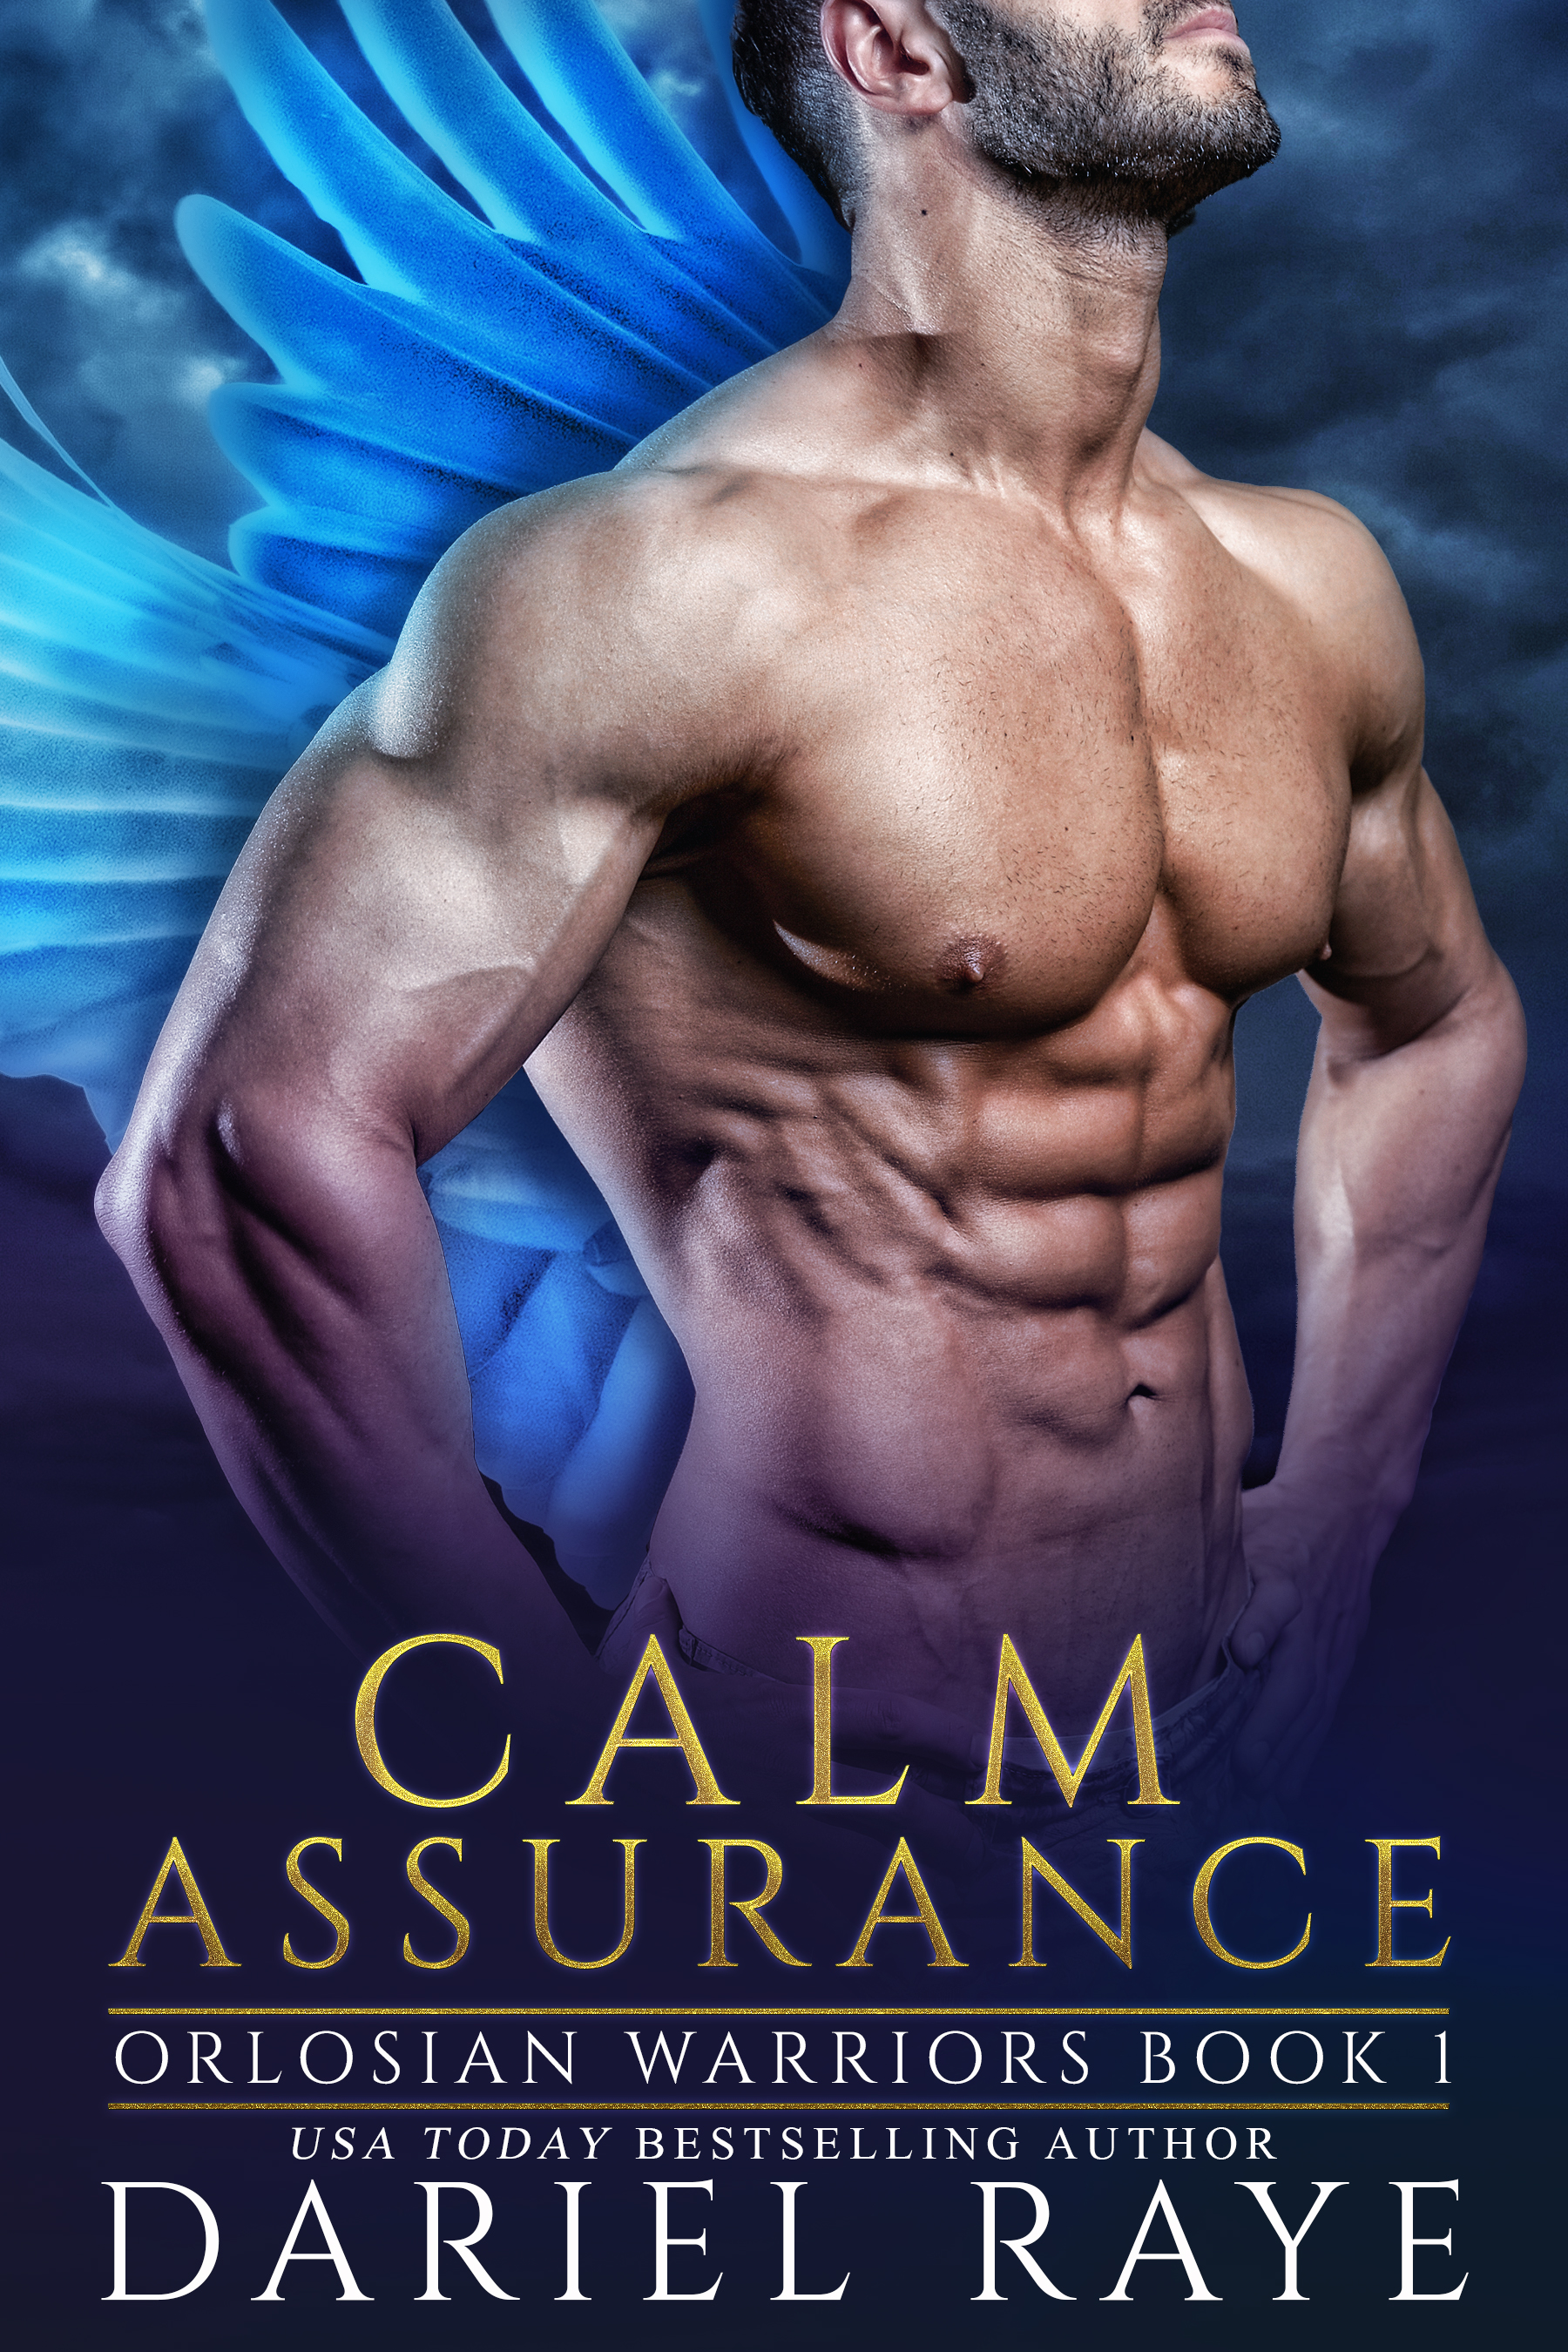 Calm Assurance: Orlosian Warriors Bk.1